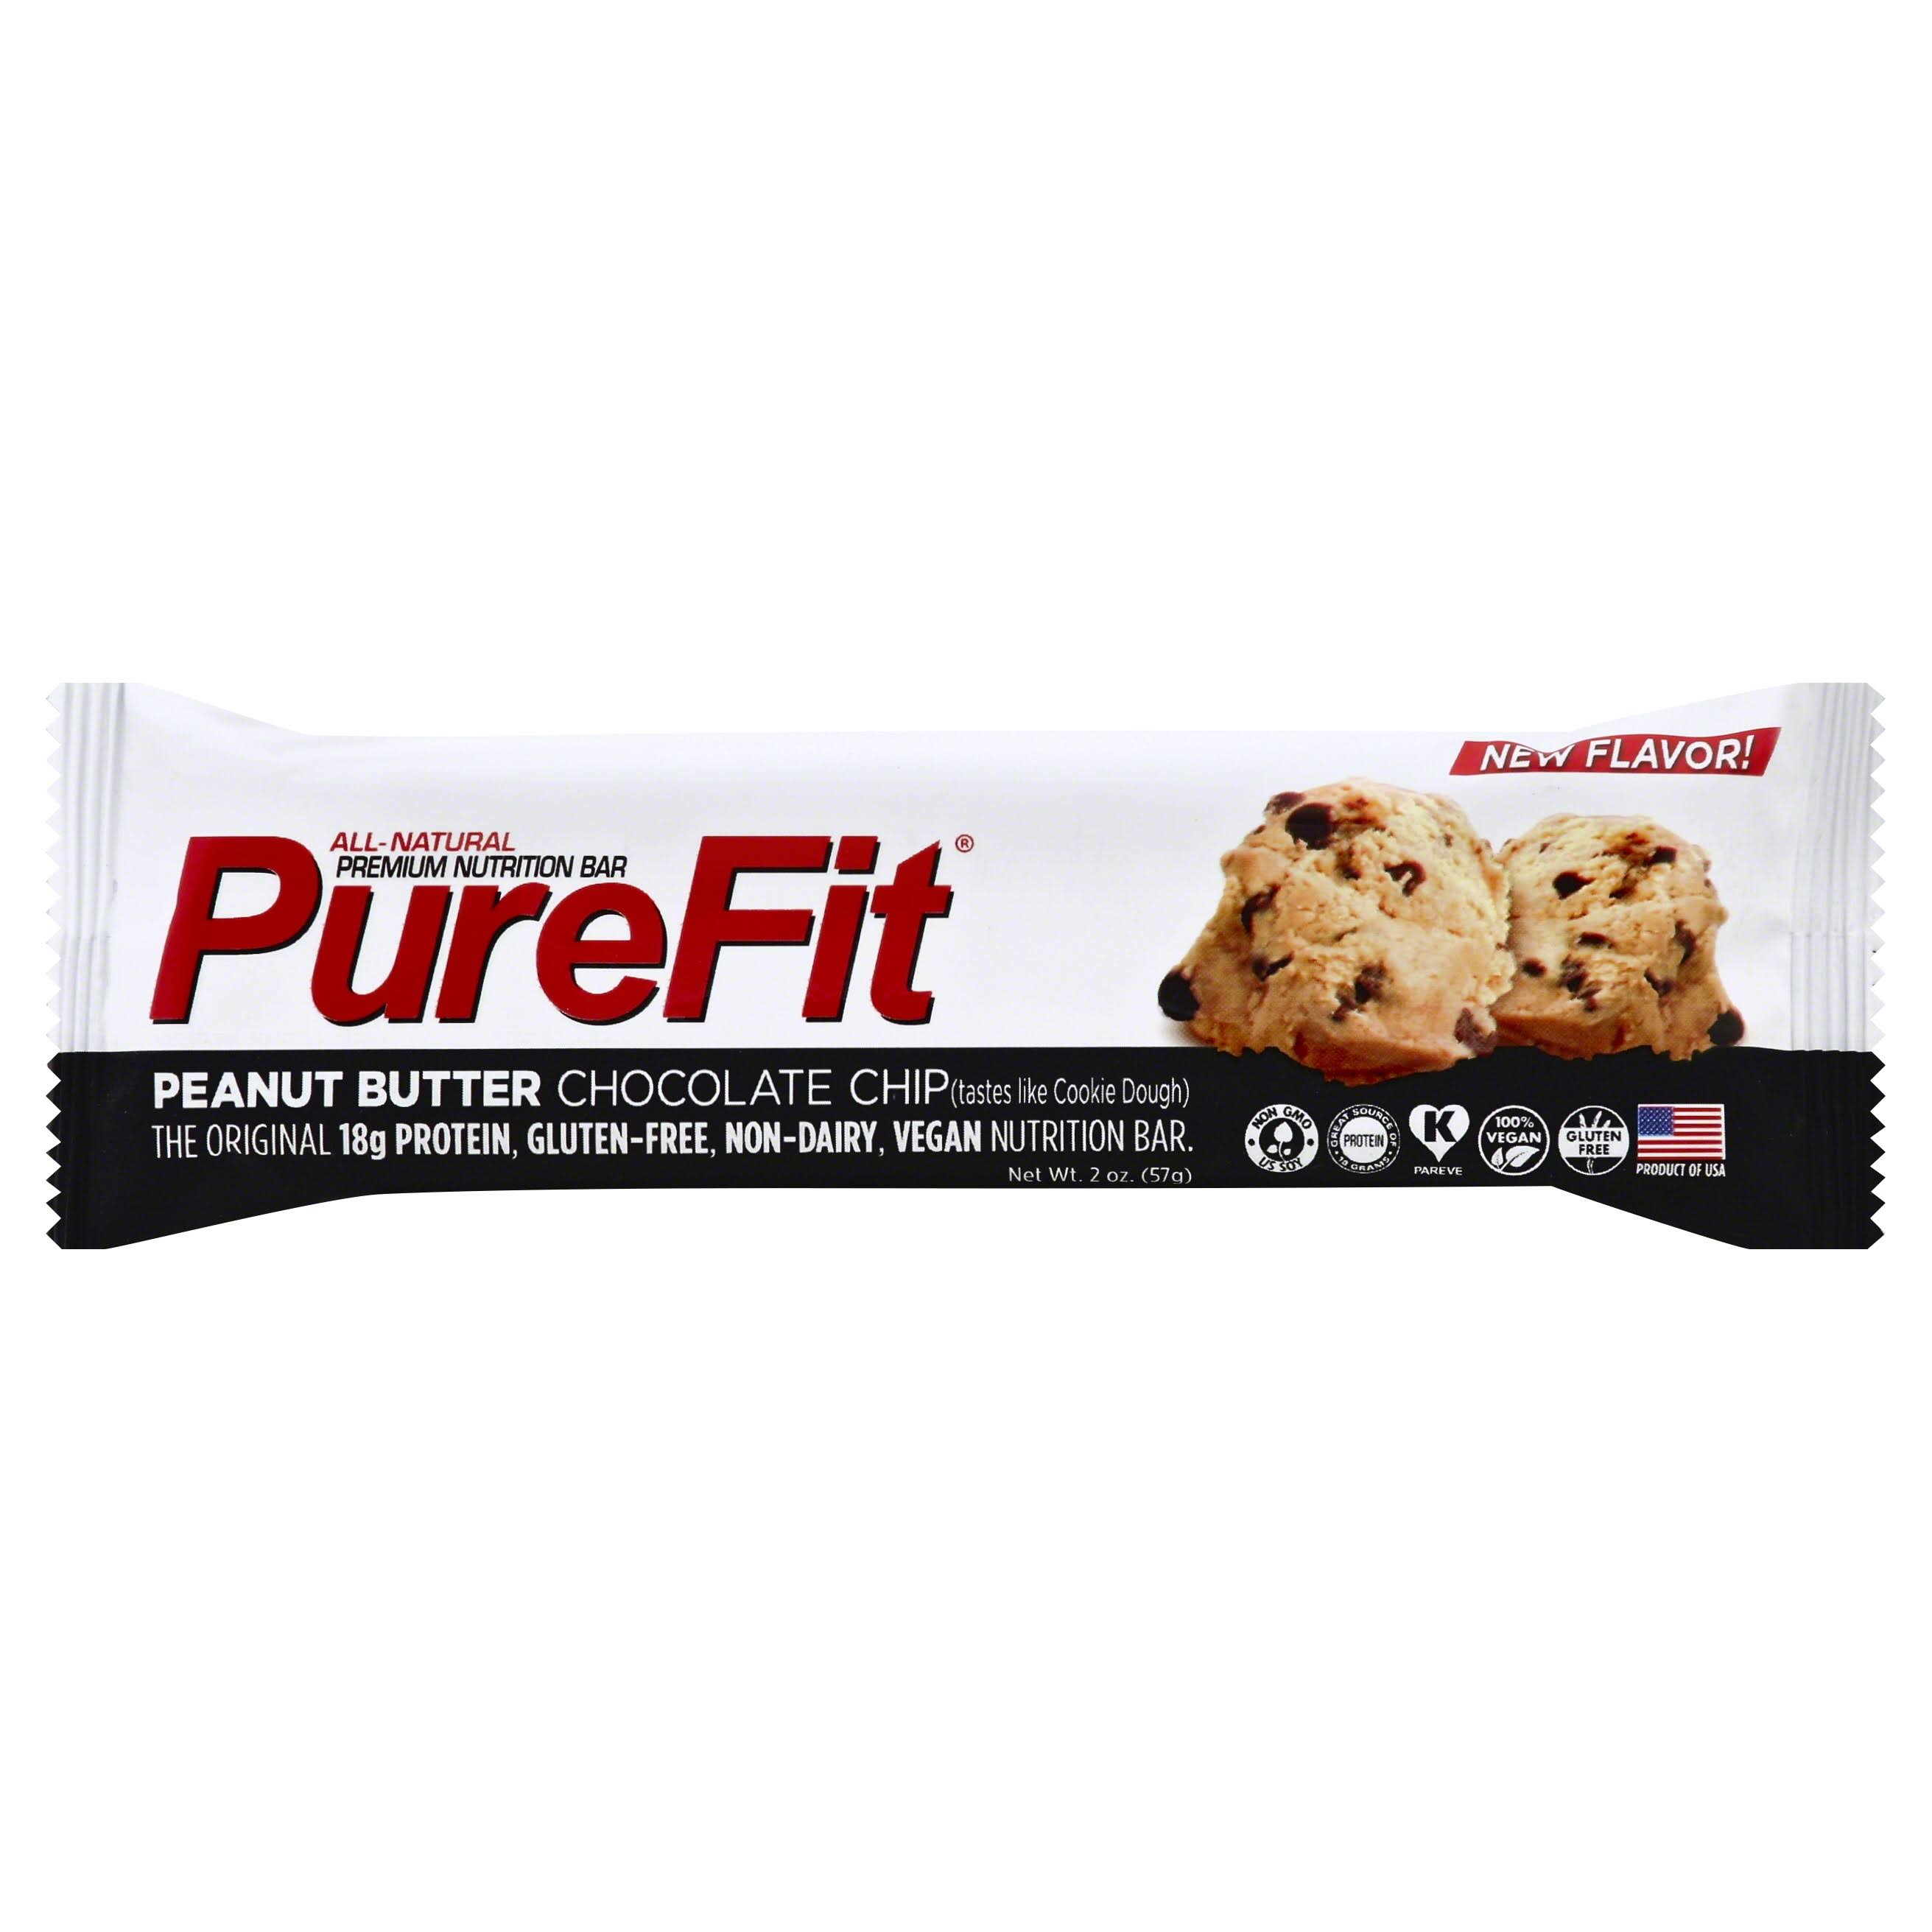 PureFit Nutrition Bar, Premium, Peanut Butter Chocolate Chip - 2 oz